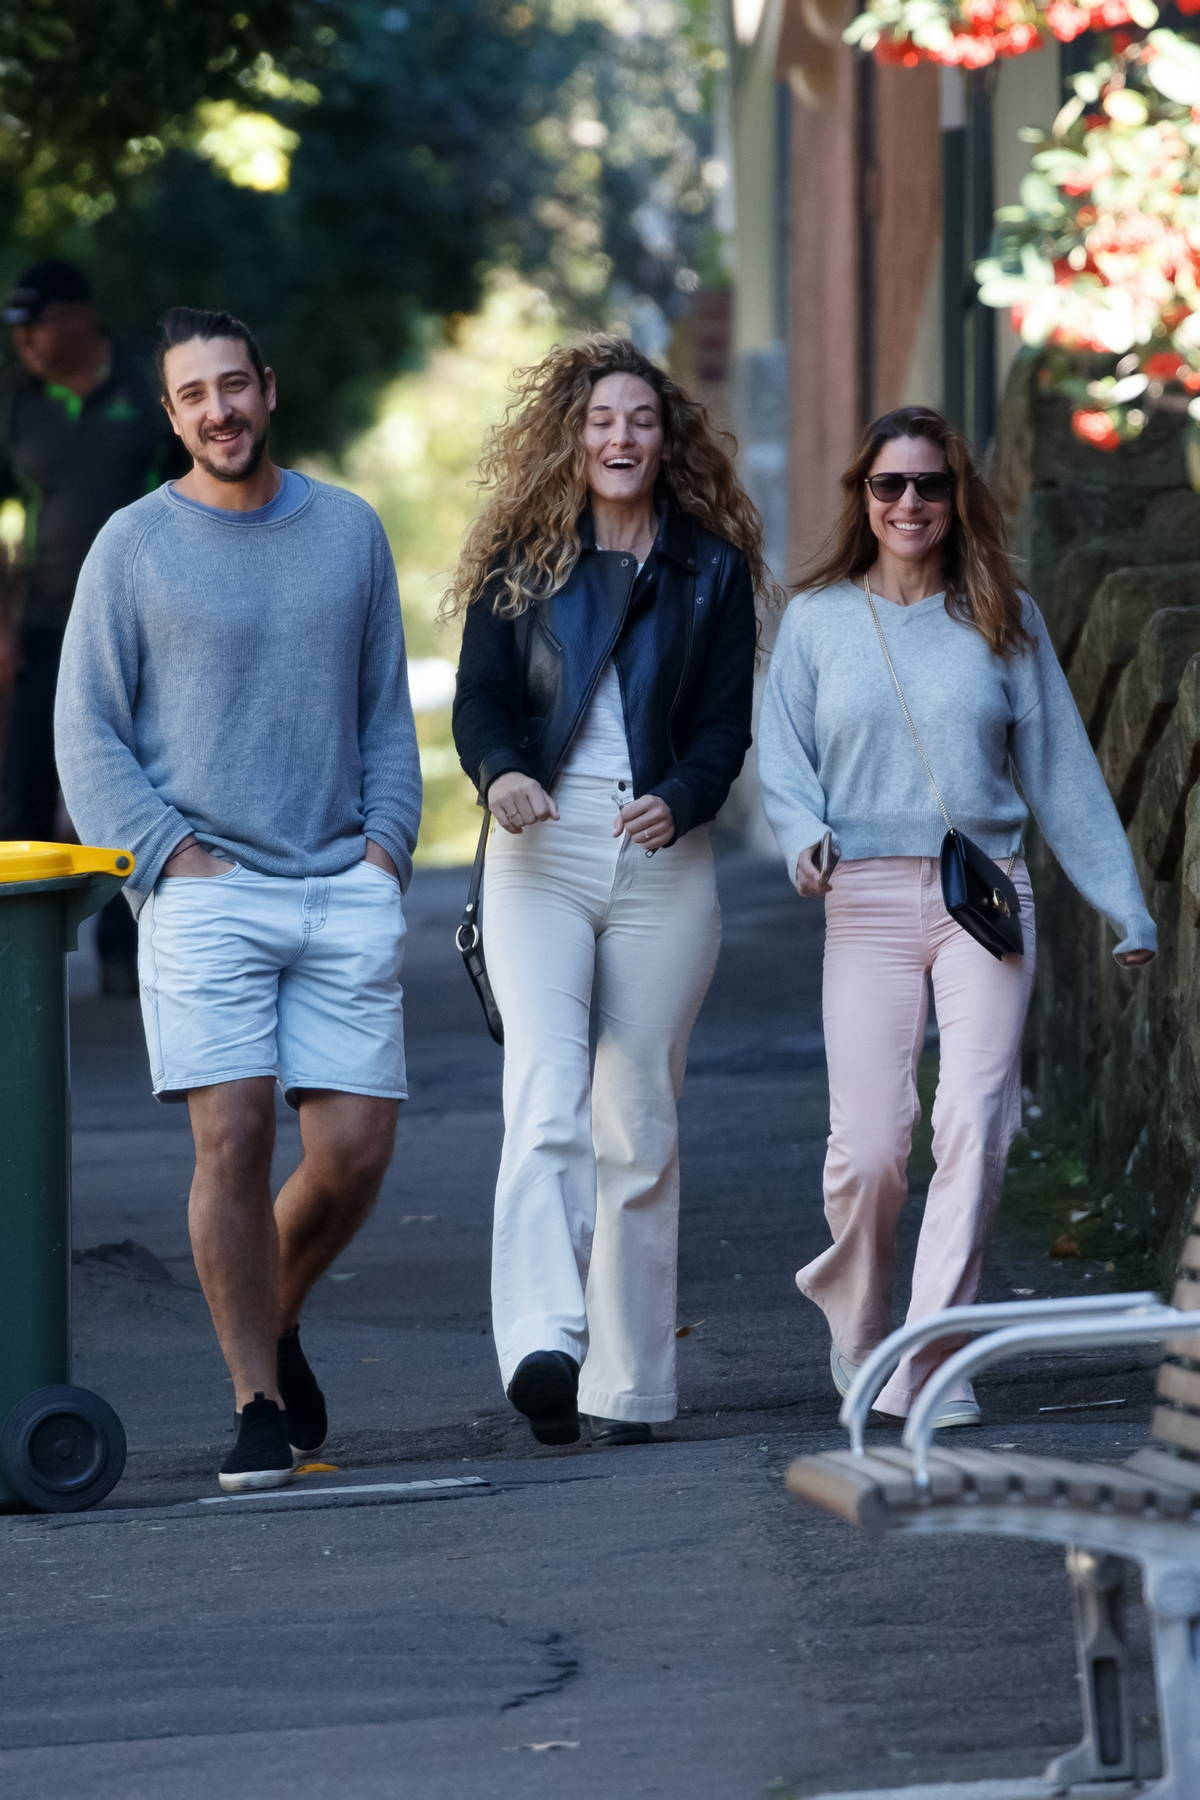 Elsa Pataky takes a walk with her brother Cristian Prieto and sister-in-law in Sydney, Australia